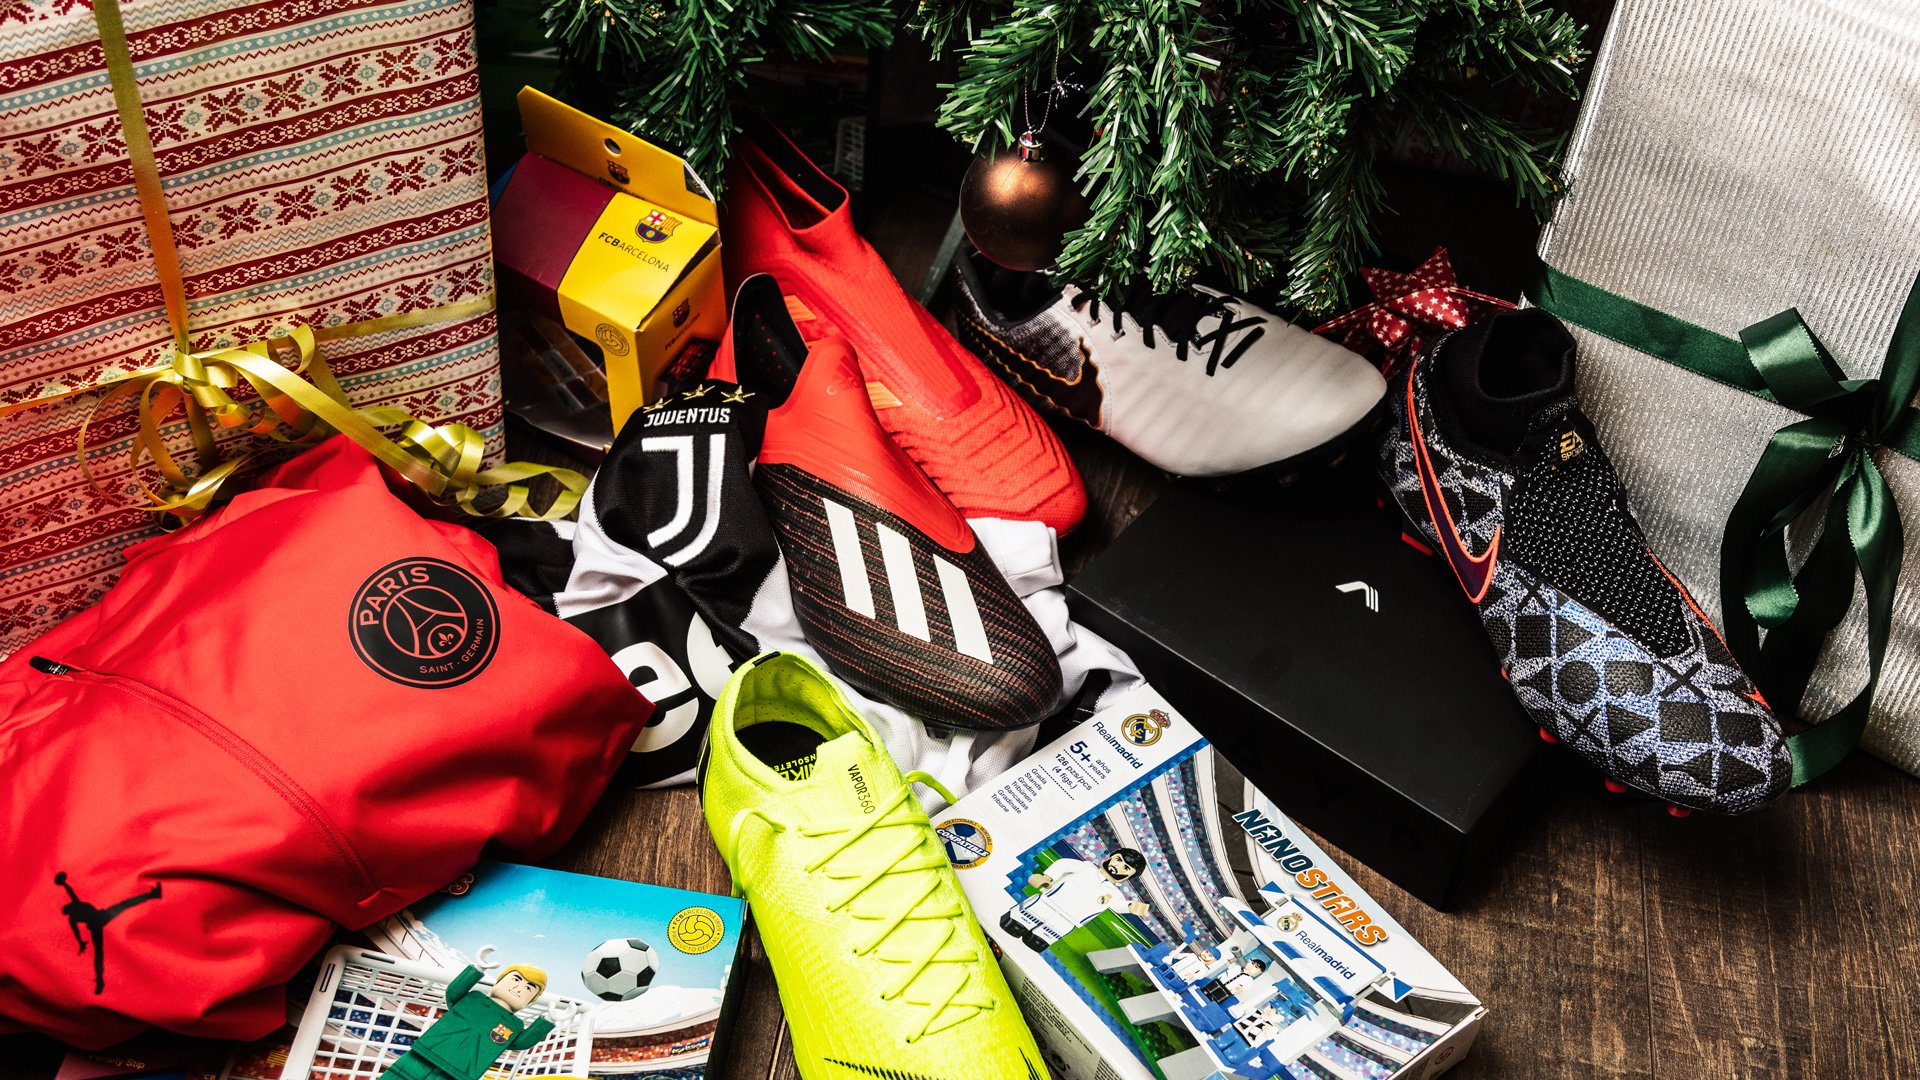 Wish For Christmas.2018 Unisport Christmas Wish List See Which Products To